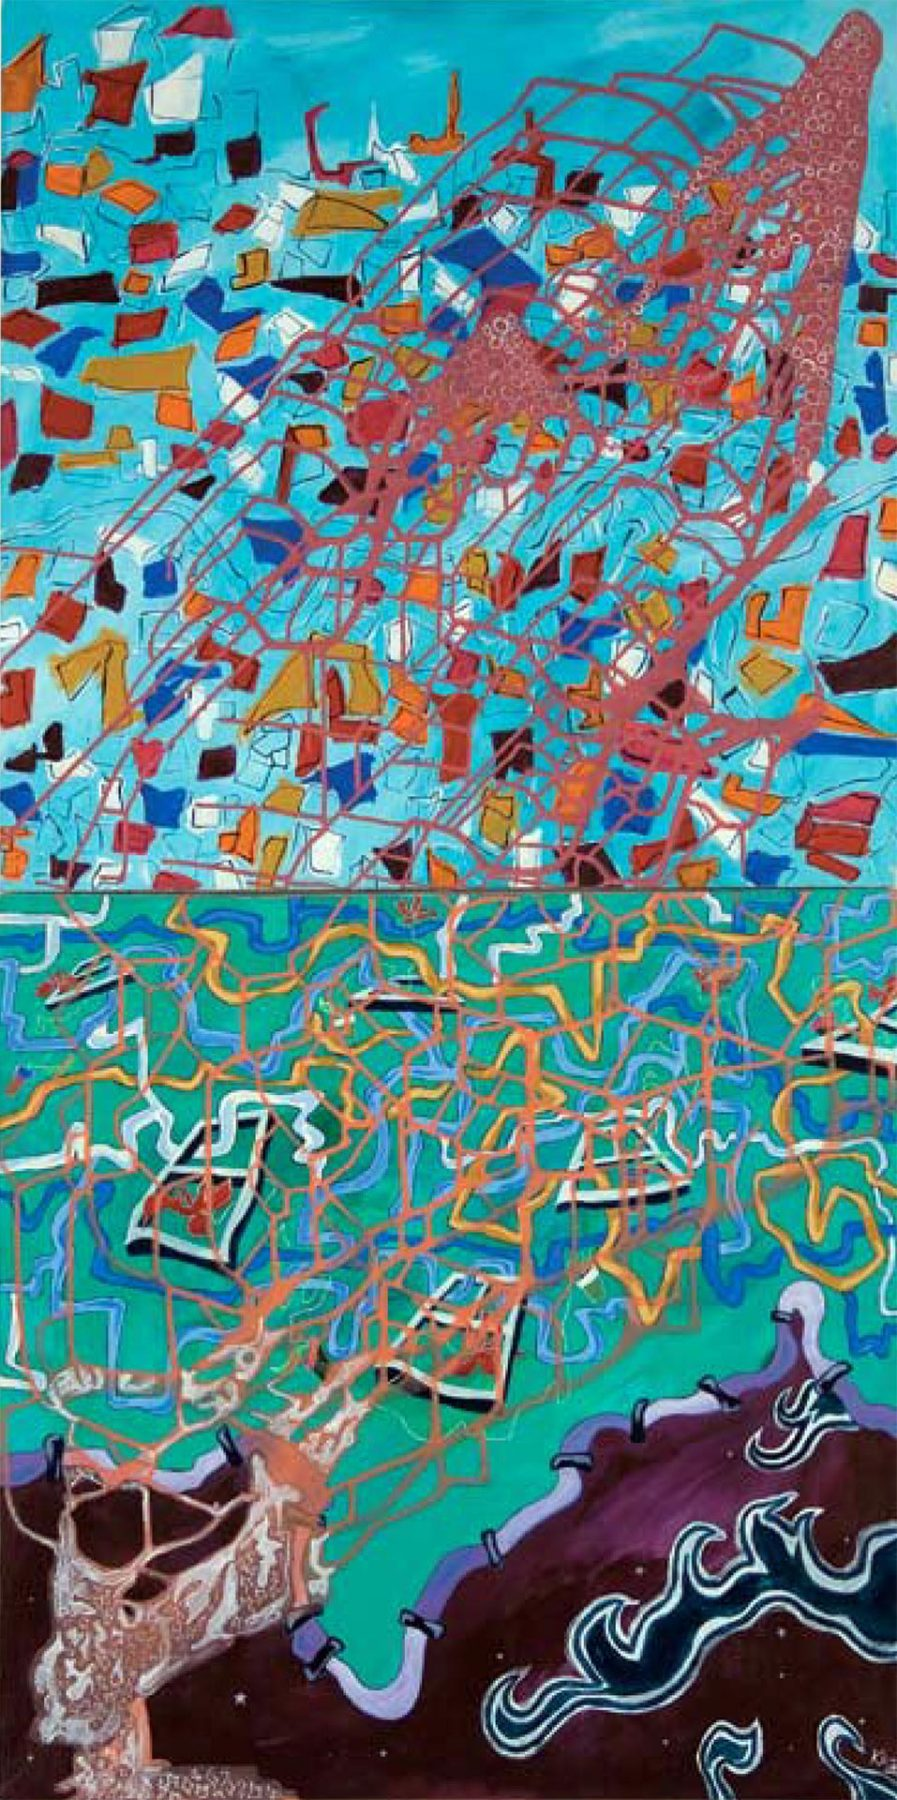 Flood in the Sky (2007) acrylic on canvas, 1.68H x 0.84W meters